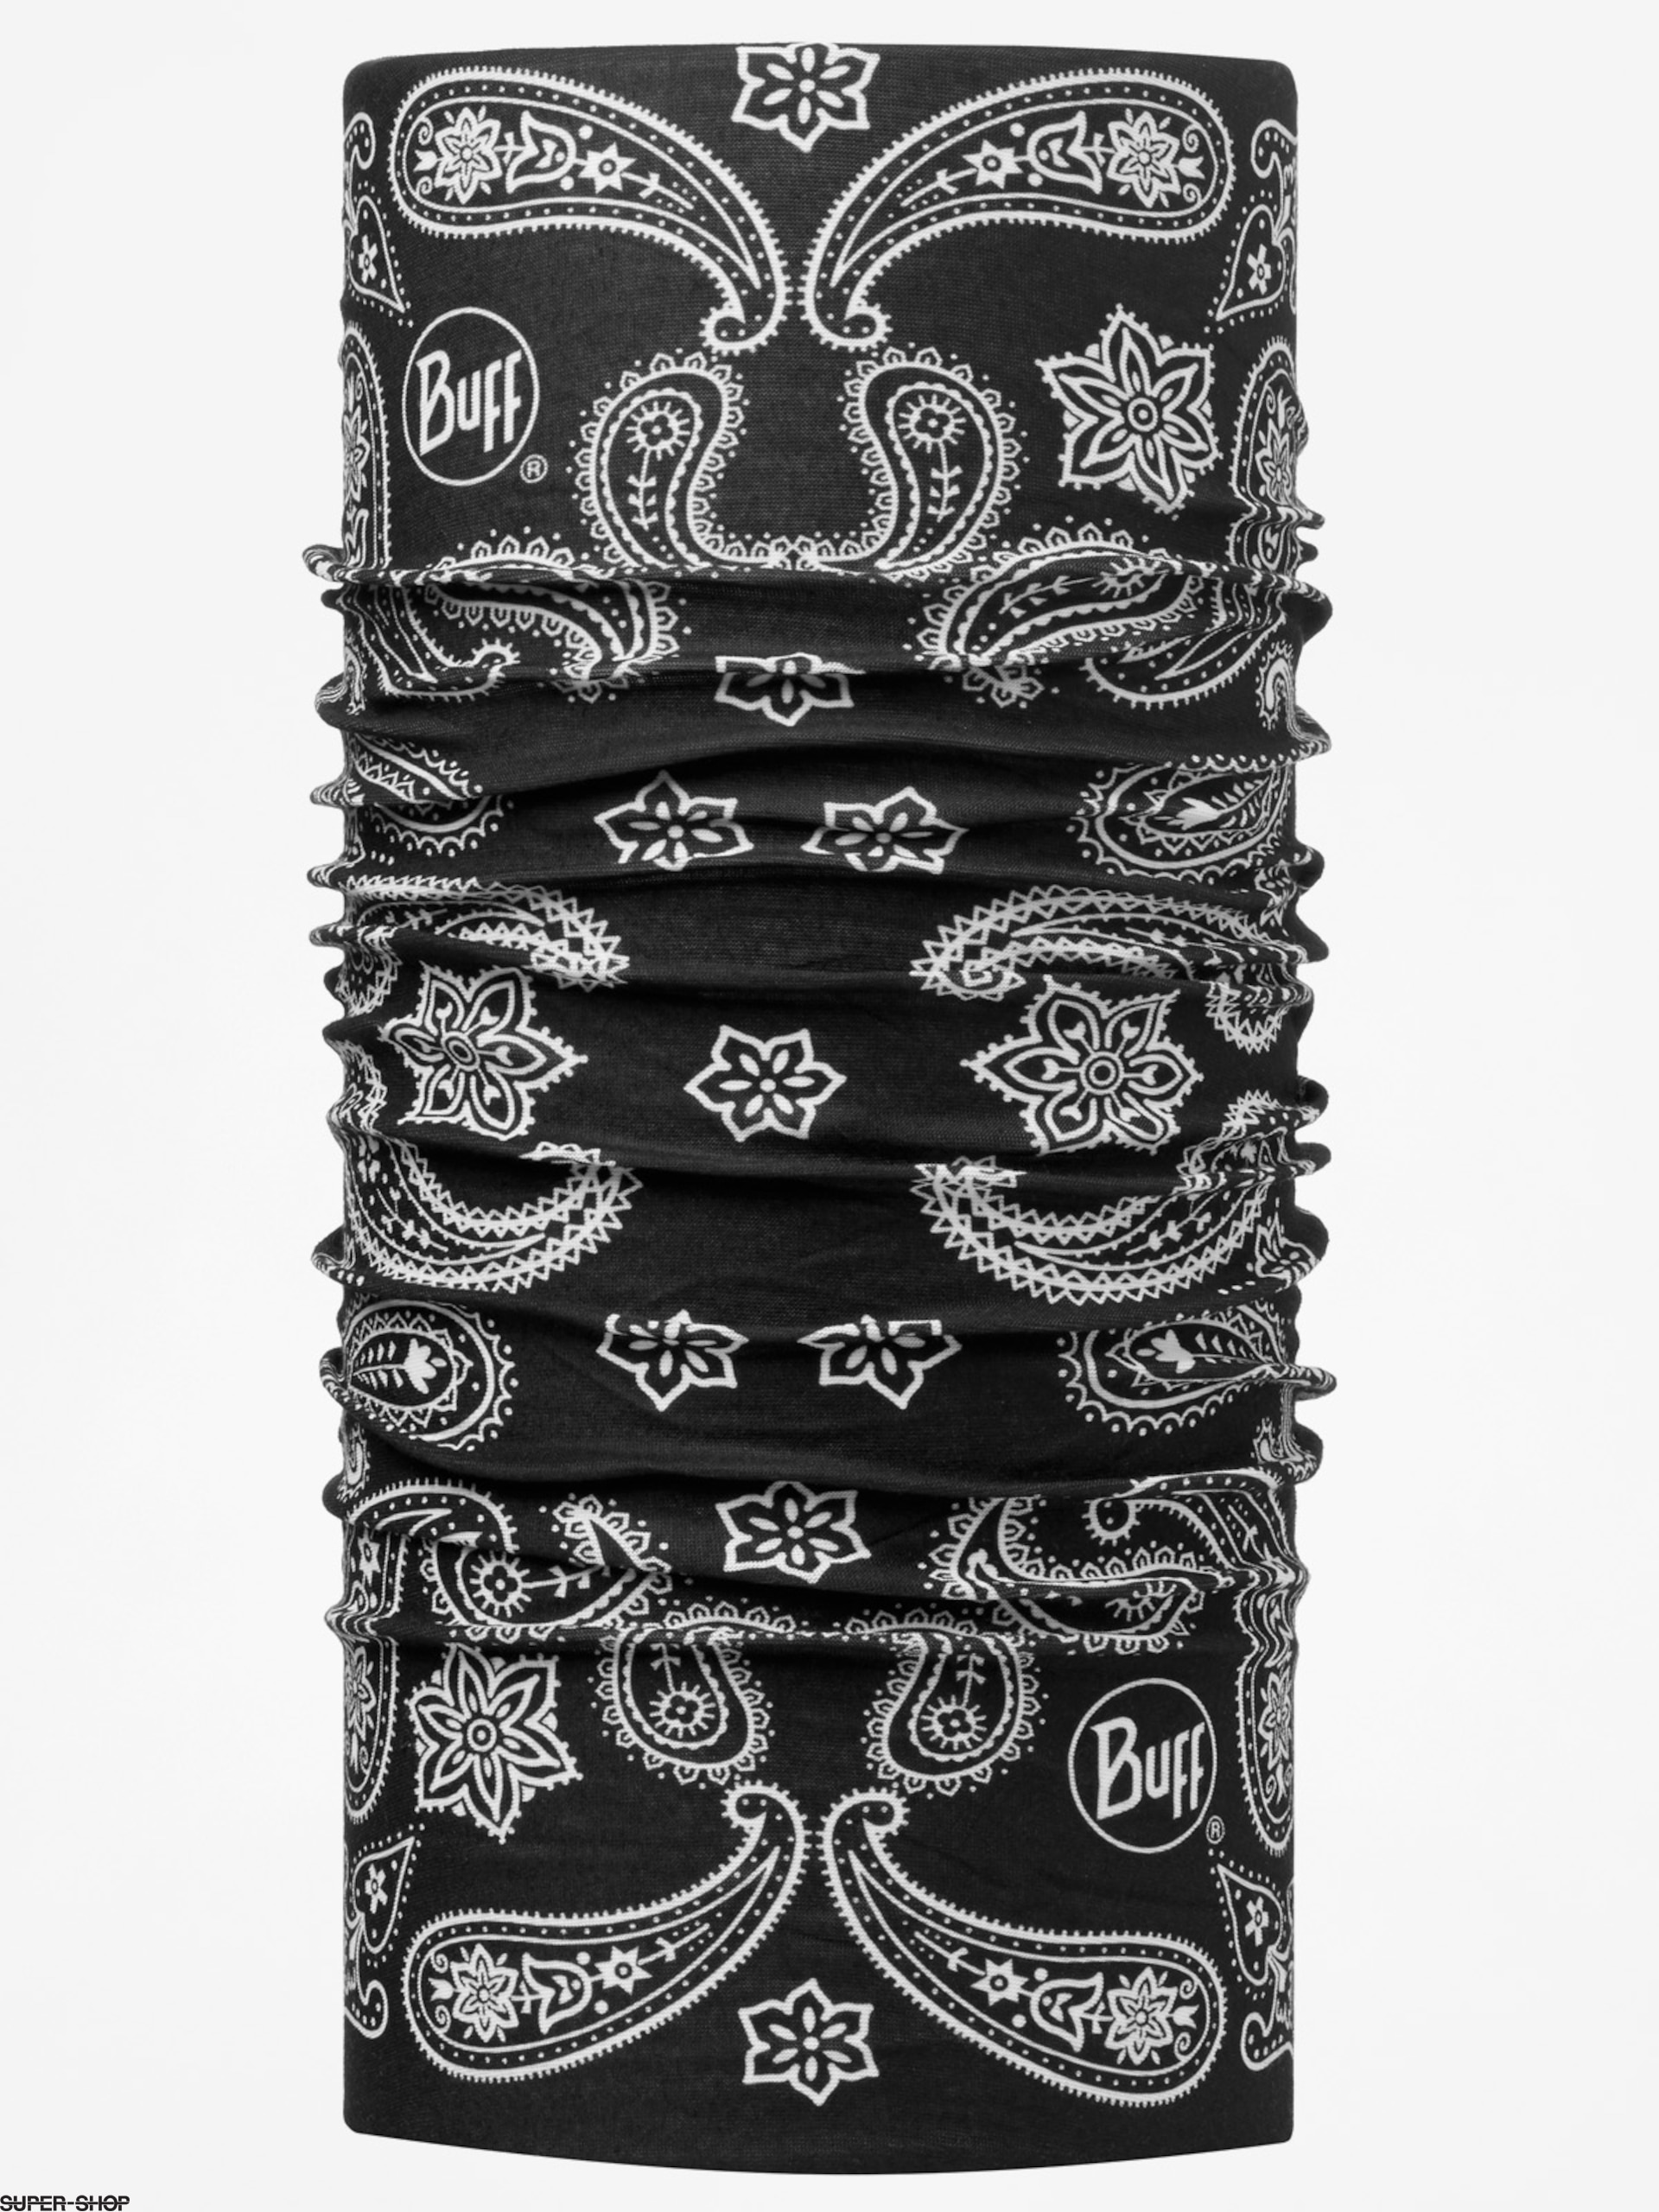 Buff Bandana Original (cashmere black)